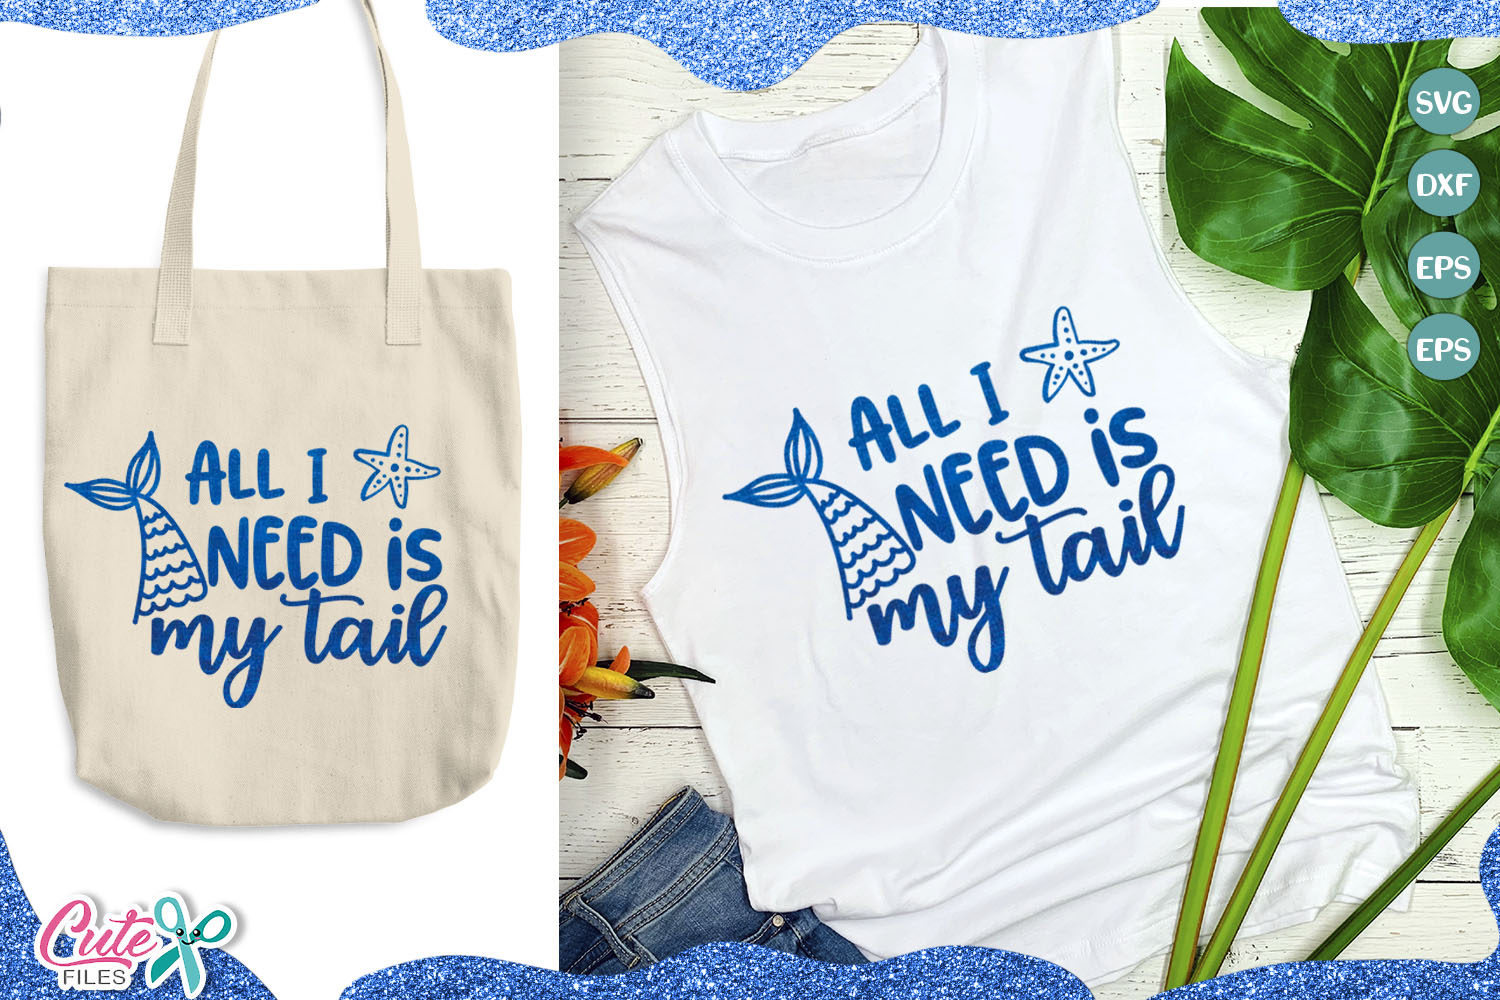 All I Need Is My Tail Graphic By Cute Files Creative Fabrica